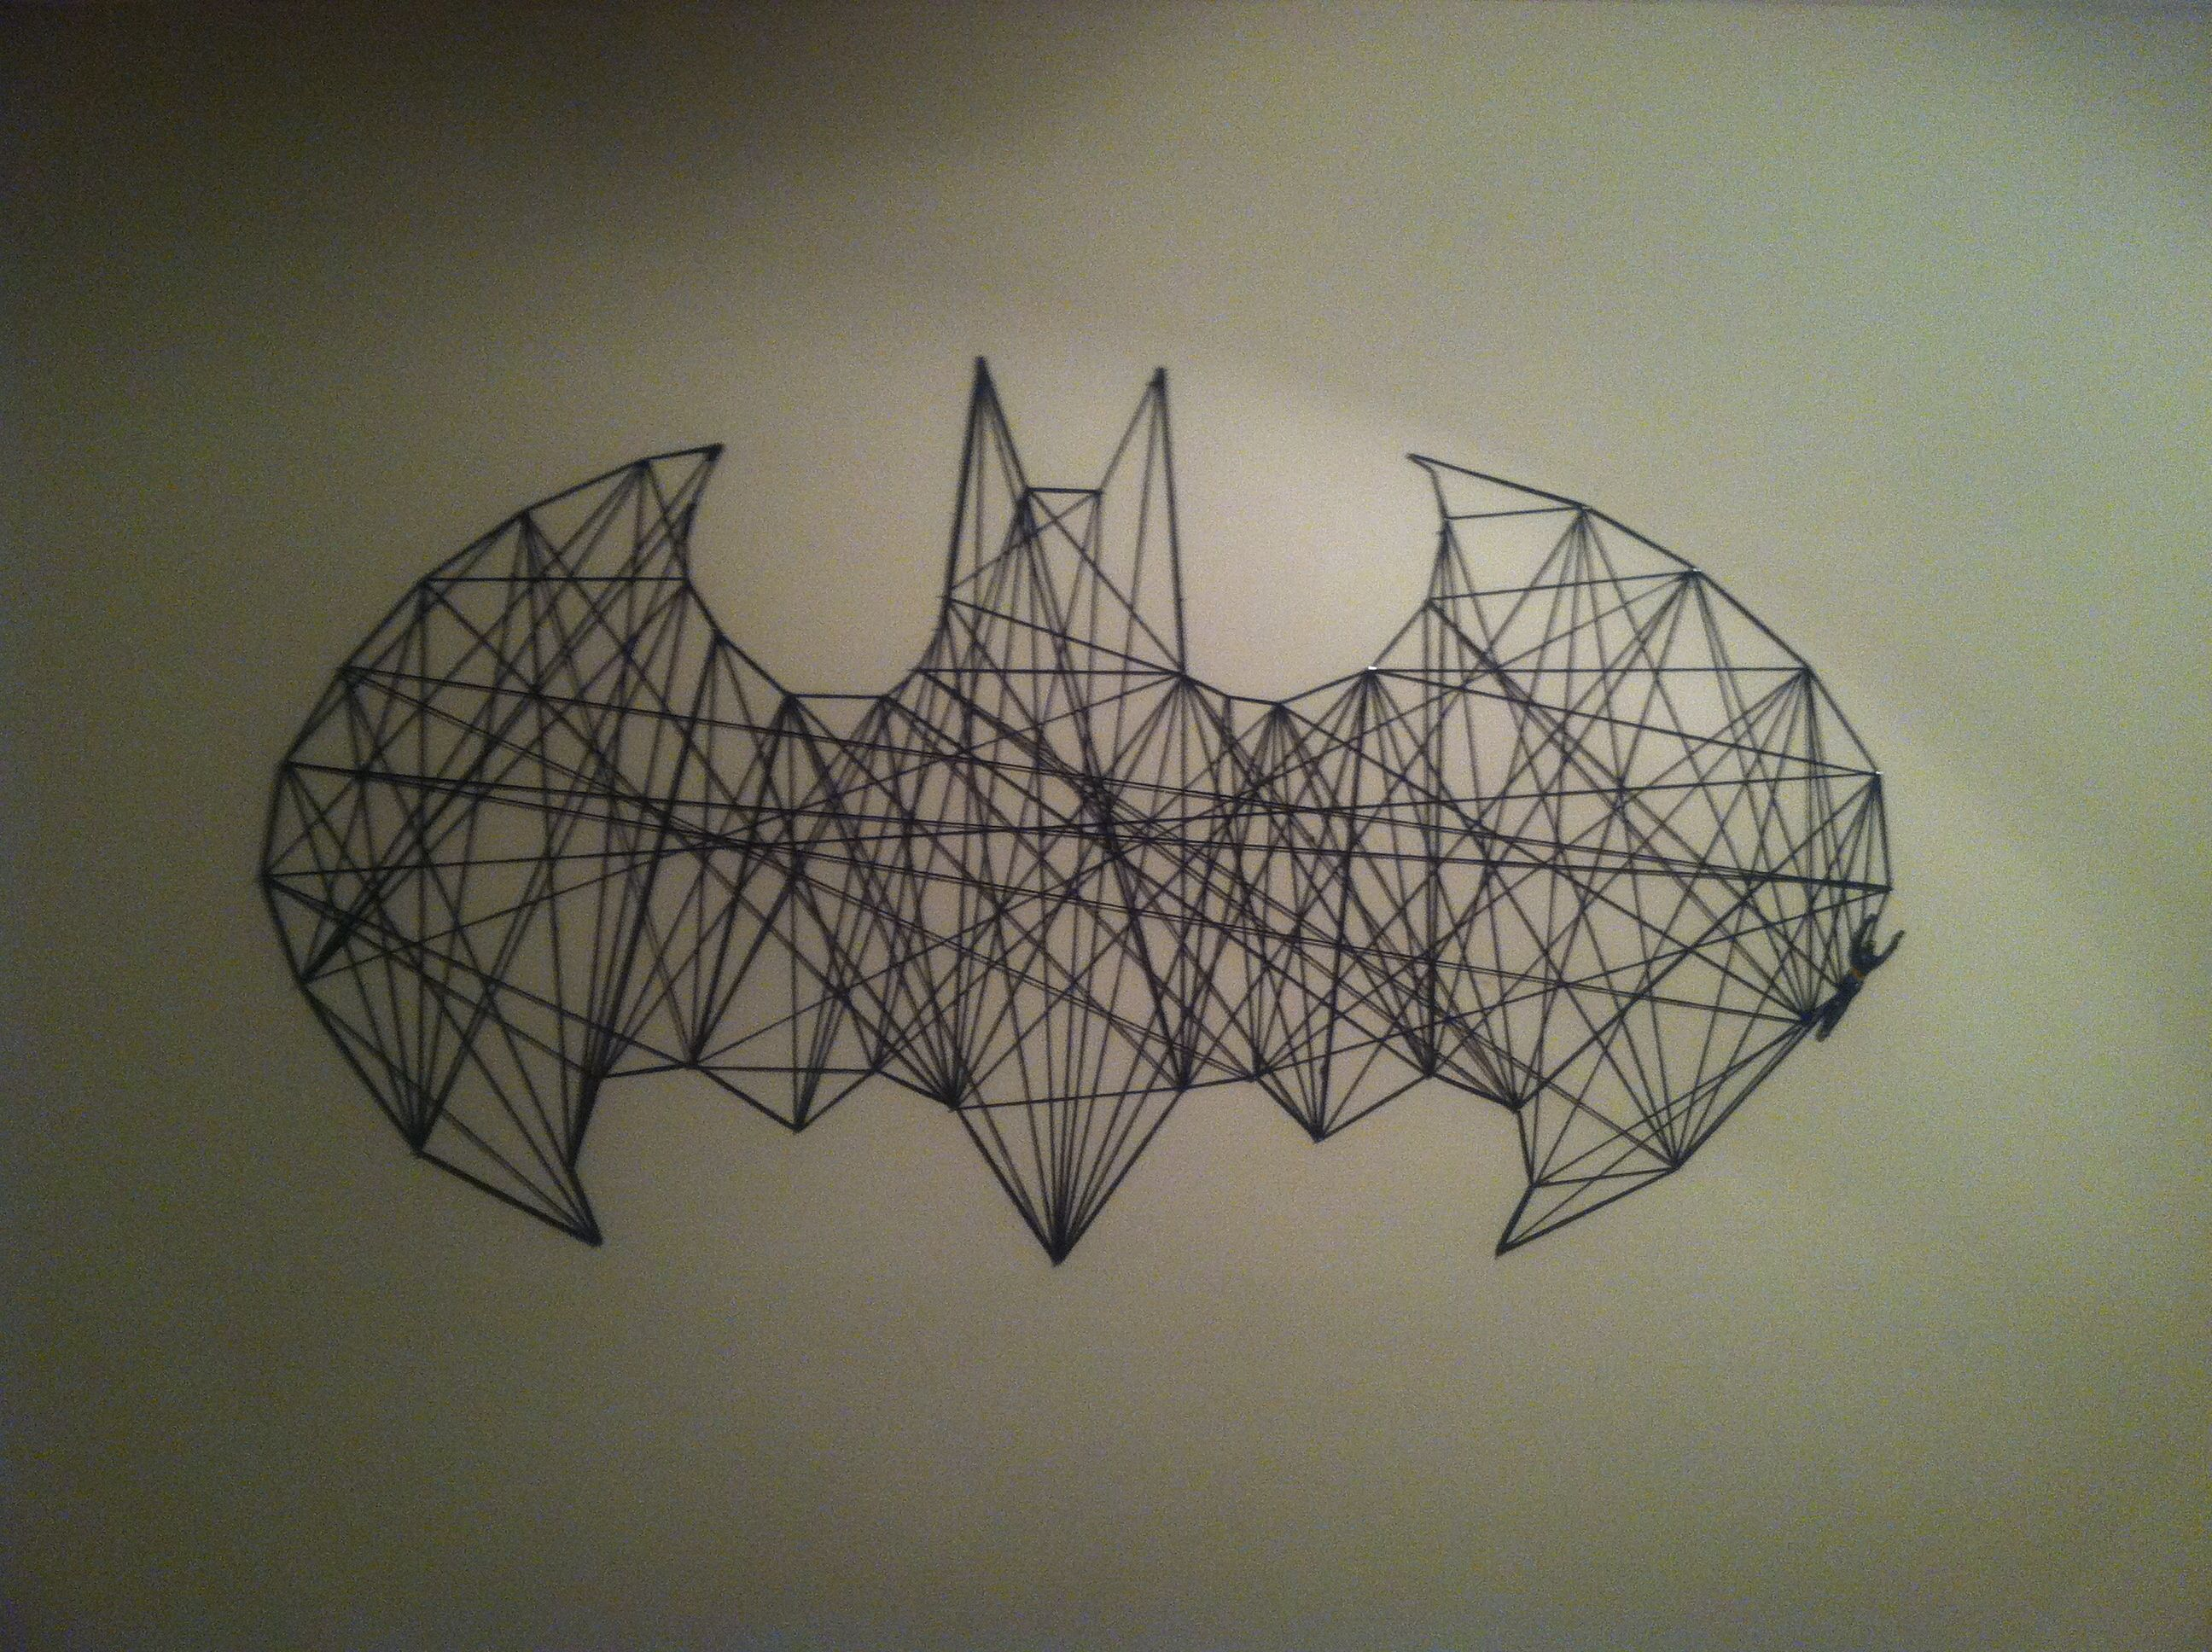 This is a bat symbol that I strung together using yarn and nails that were already in my wall.